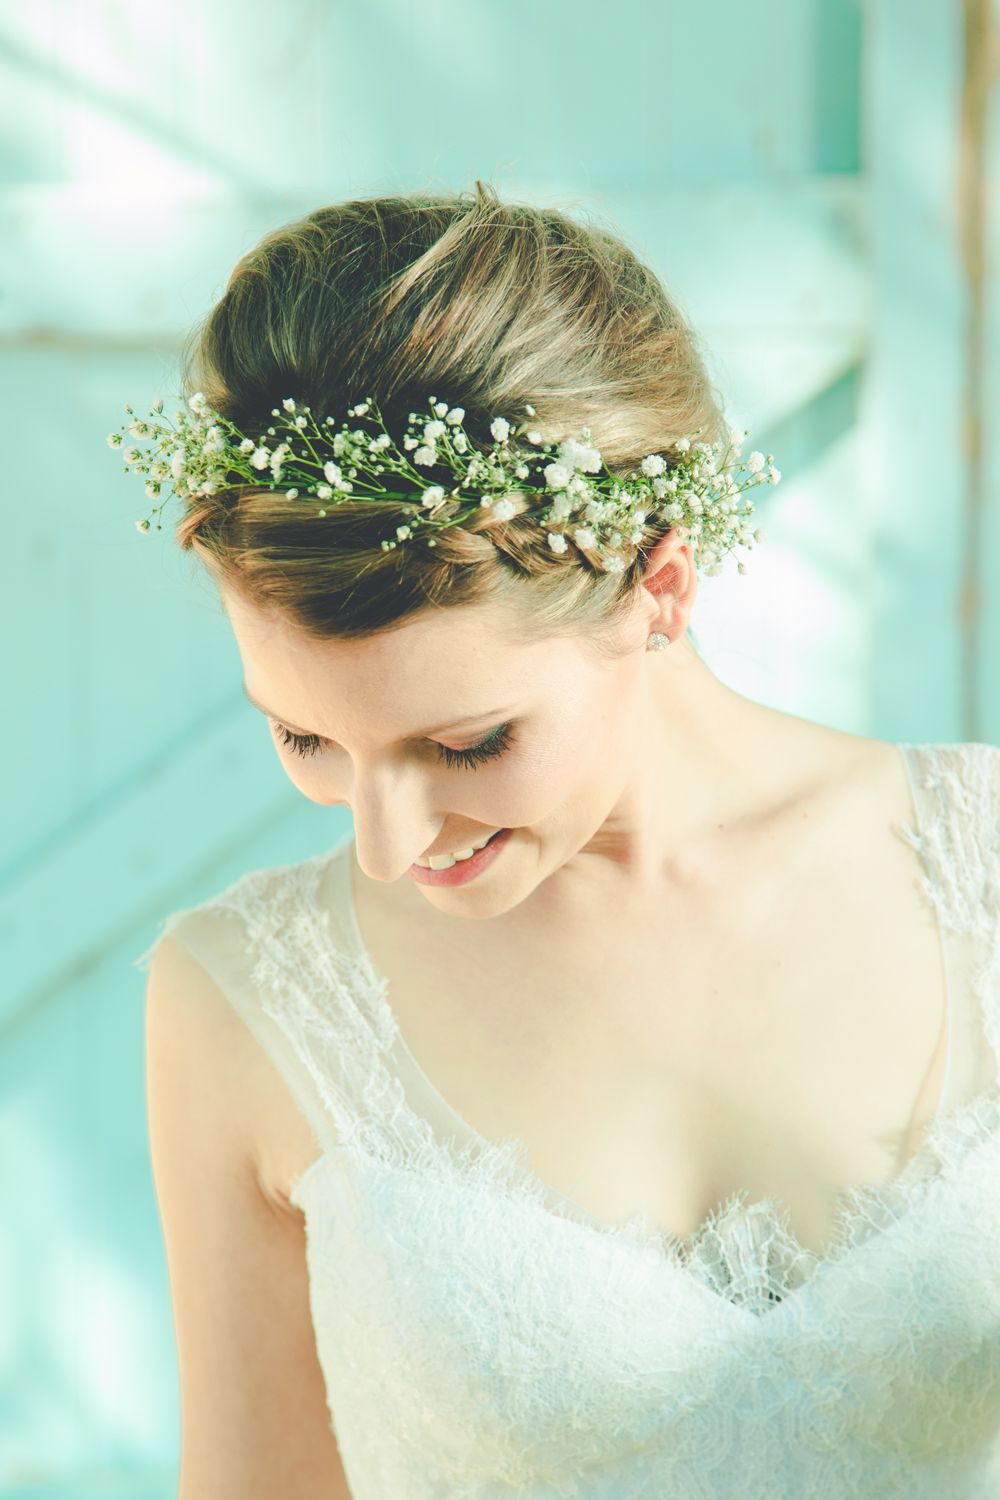 Megan & Waldo wedding decor by Love And Grace. Photo's by Blackframe Photography. Gyp hair piece for the bride.